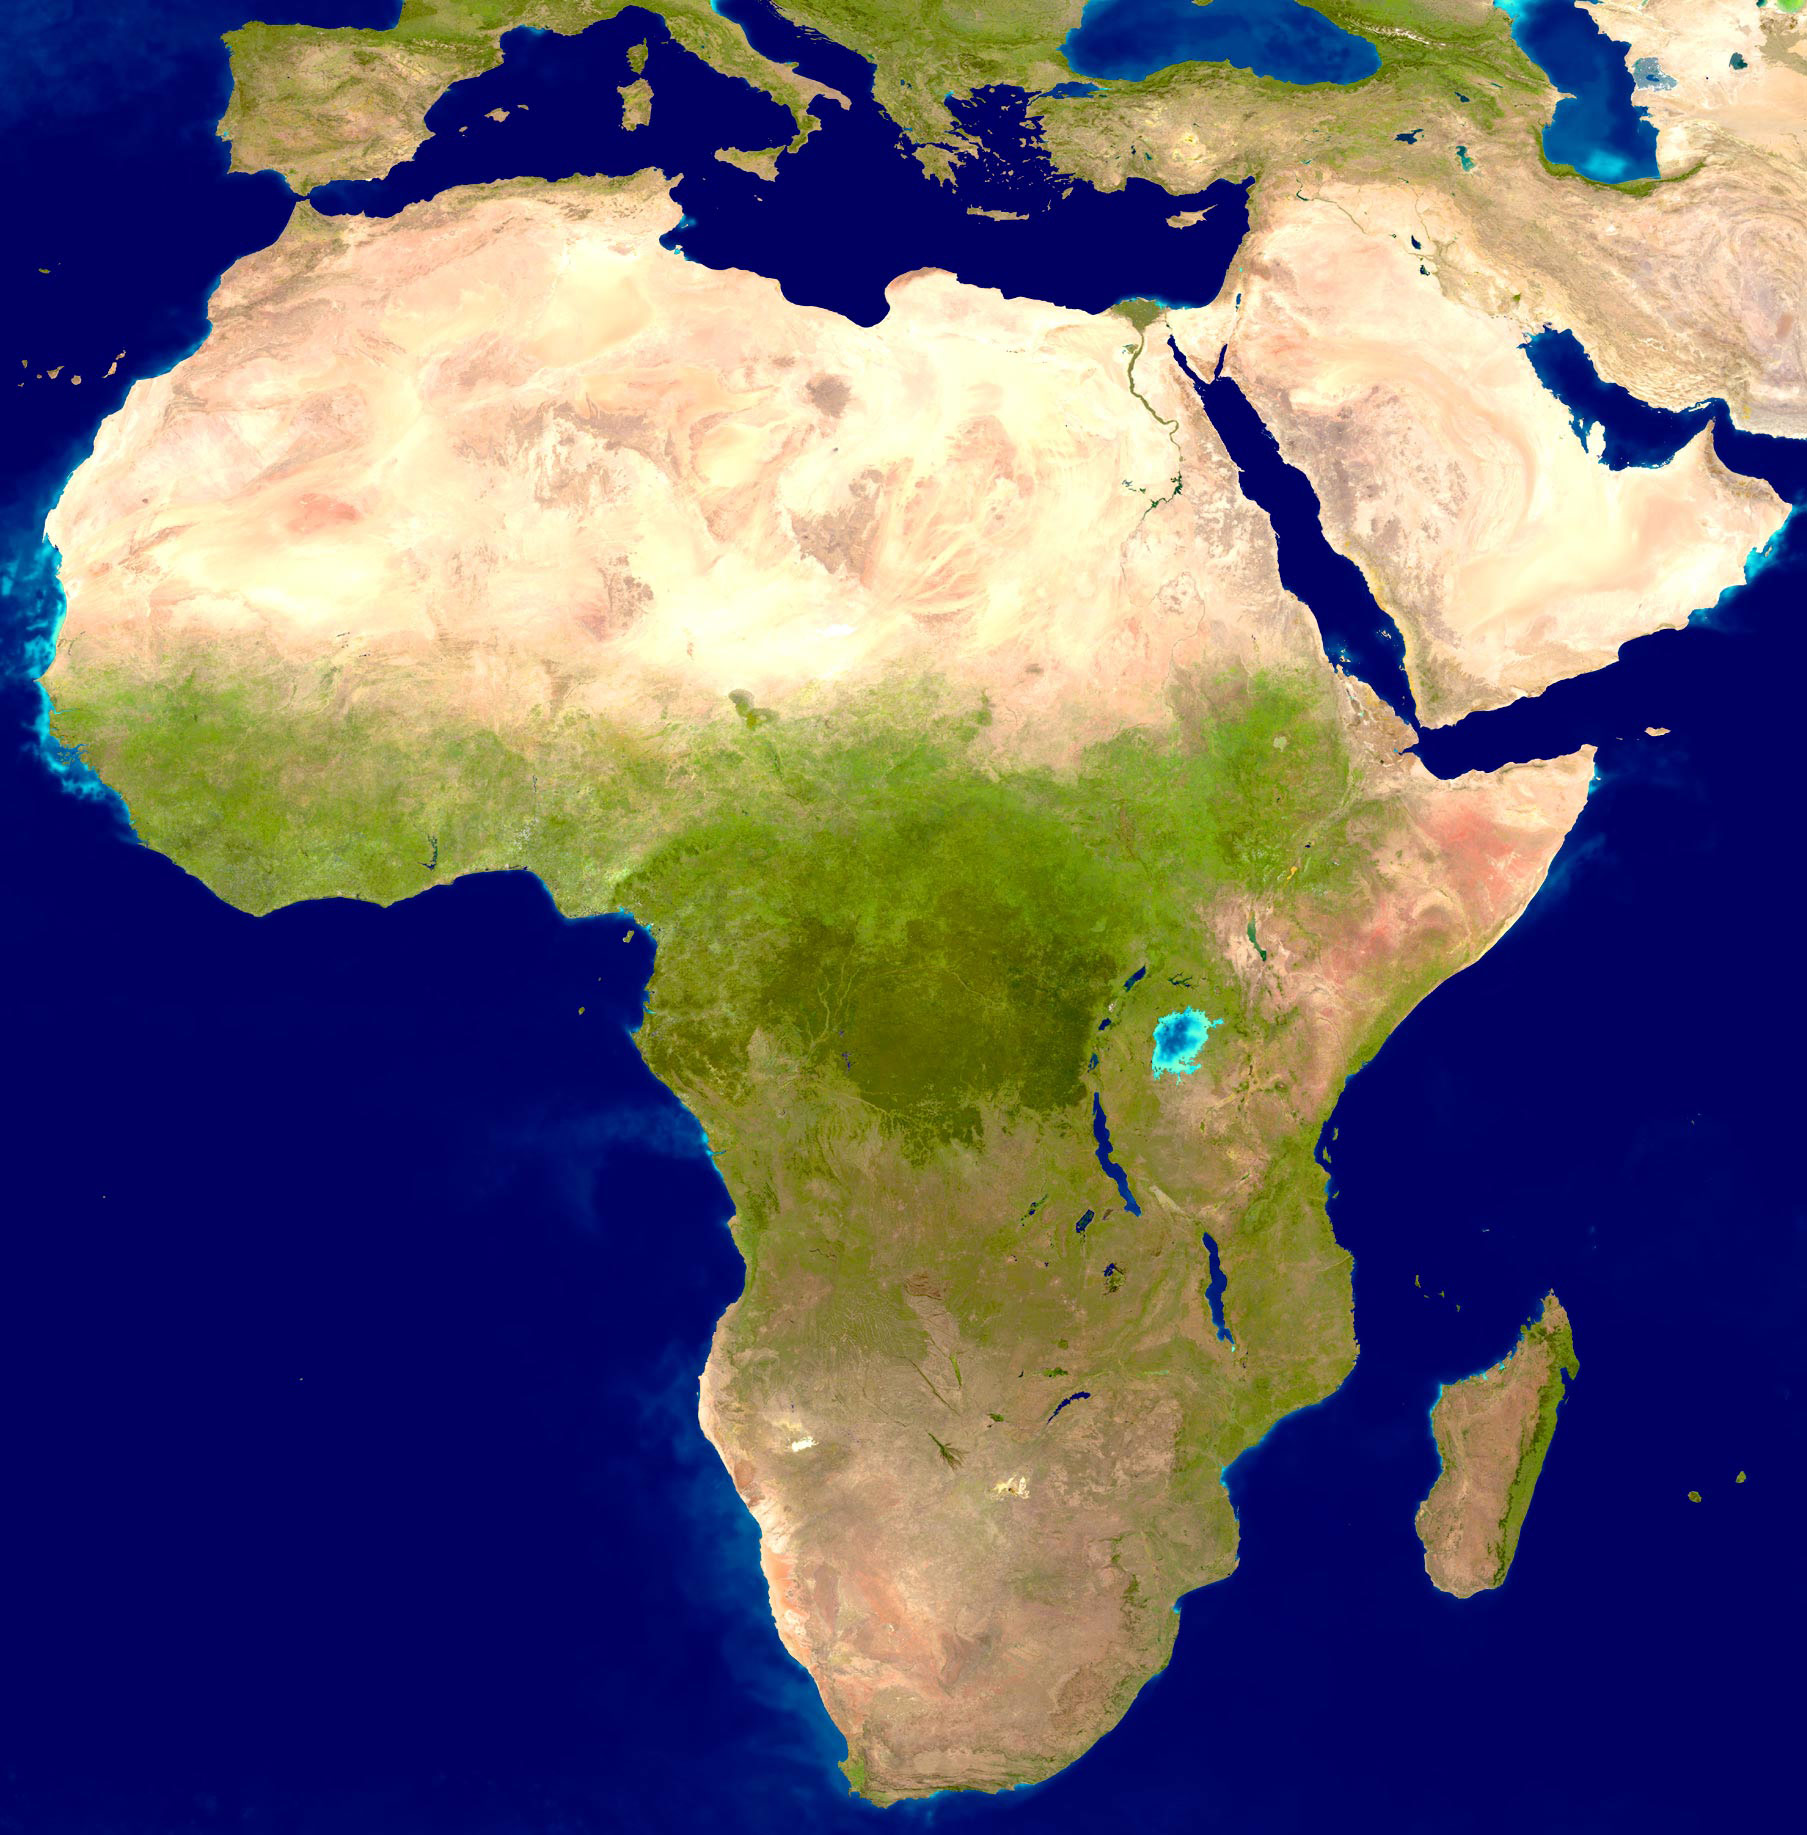 The true size of africa deepresource largedetailedsatellitemapofafrica gumiabroncs Choice Image